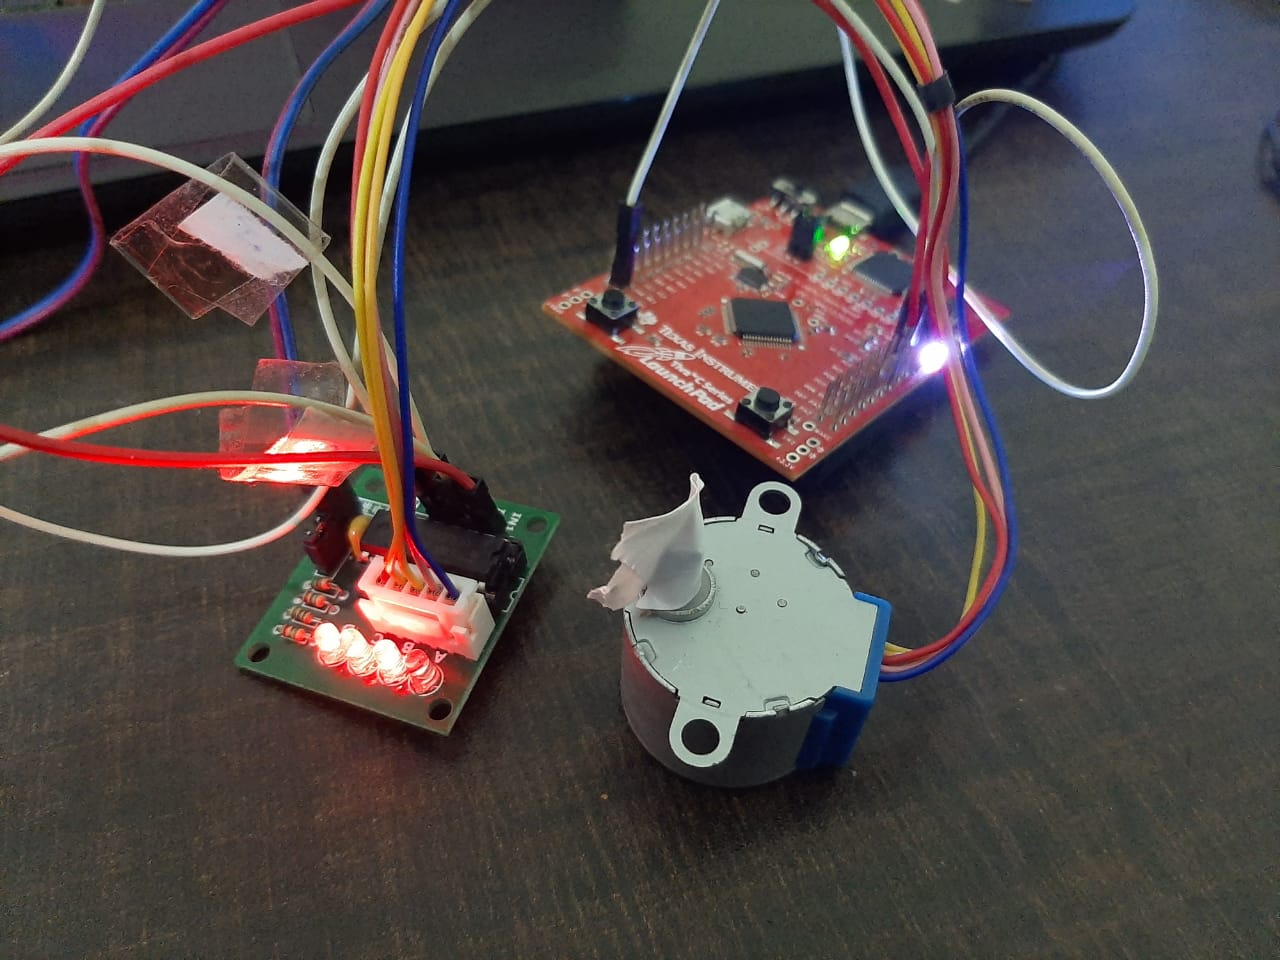 28BYJ-48 stepper motor interfacing with TM4C123 Tiva Launchpad hardware demo